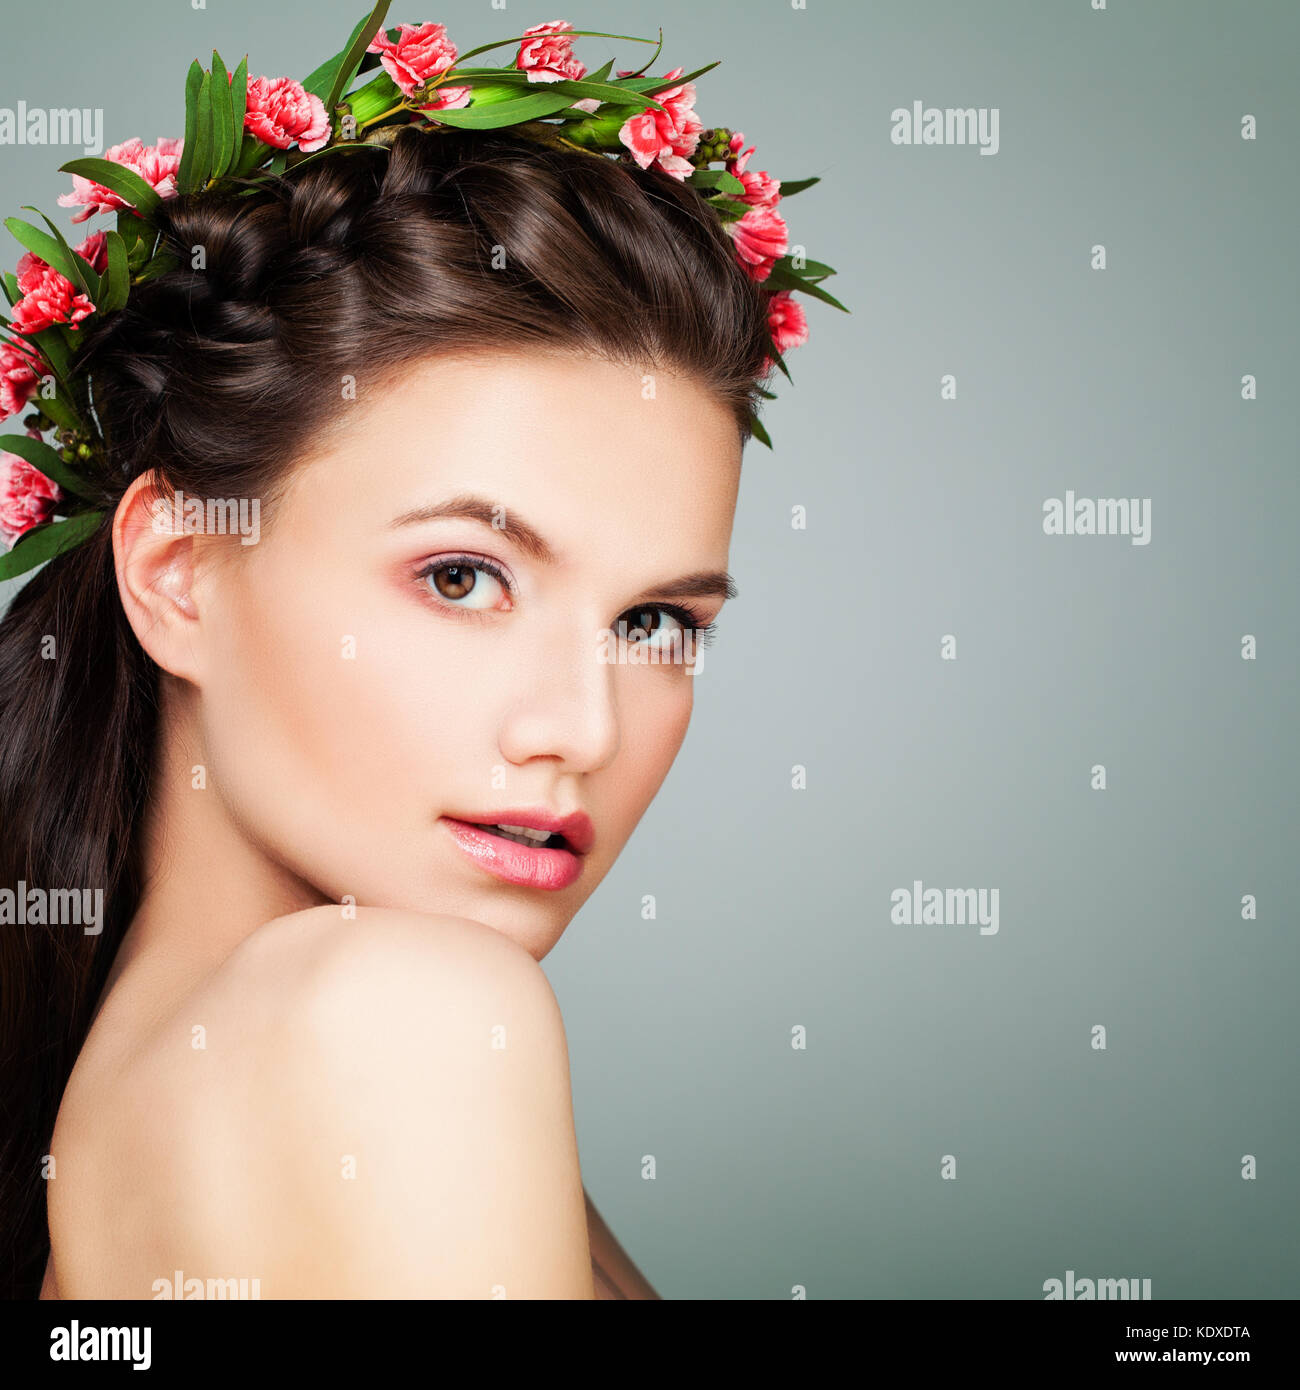 Spa Beauty. Perfect Woman with Healthy Skin and Flowers. Aesthetic Medicine and Cosmetology Concept - Stock Image